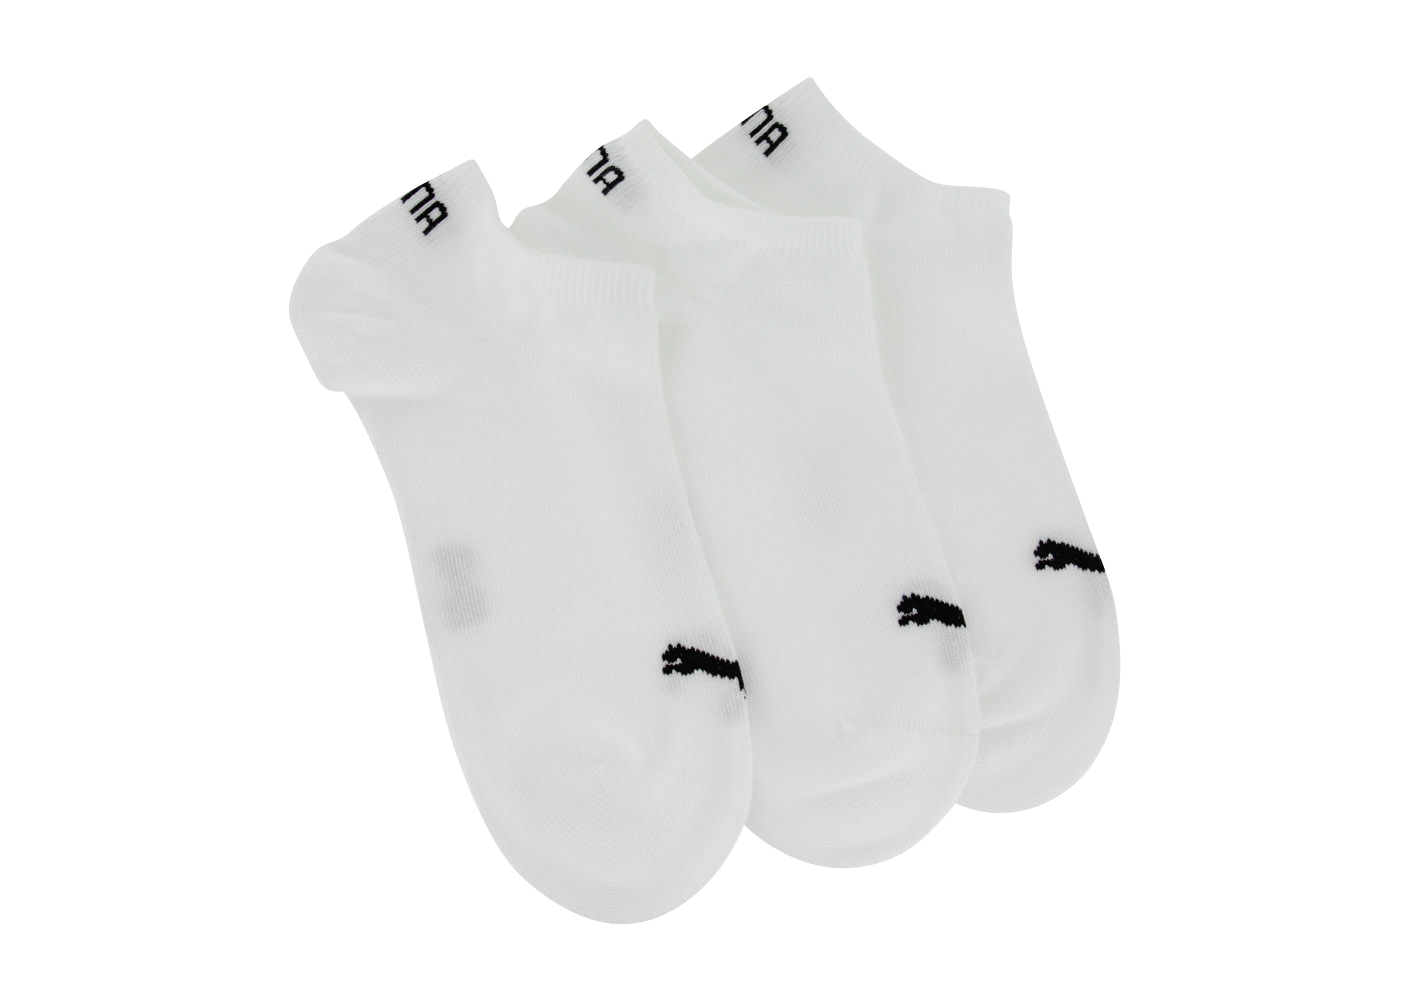 Puma Chaussettes Invisibles 3 Paires Blanches Chaussettes Homme